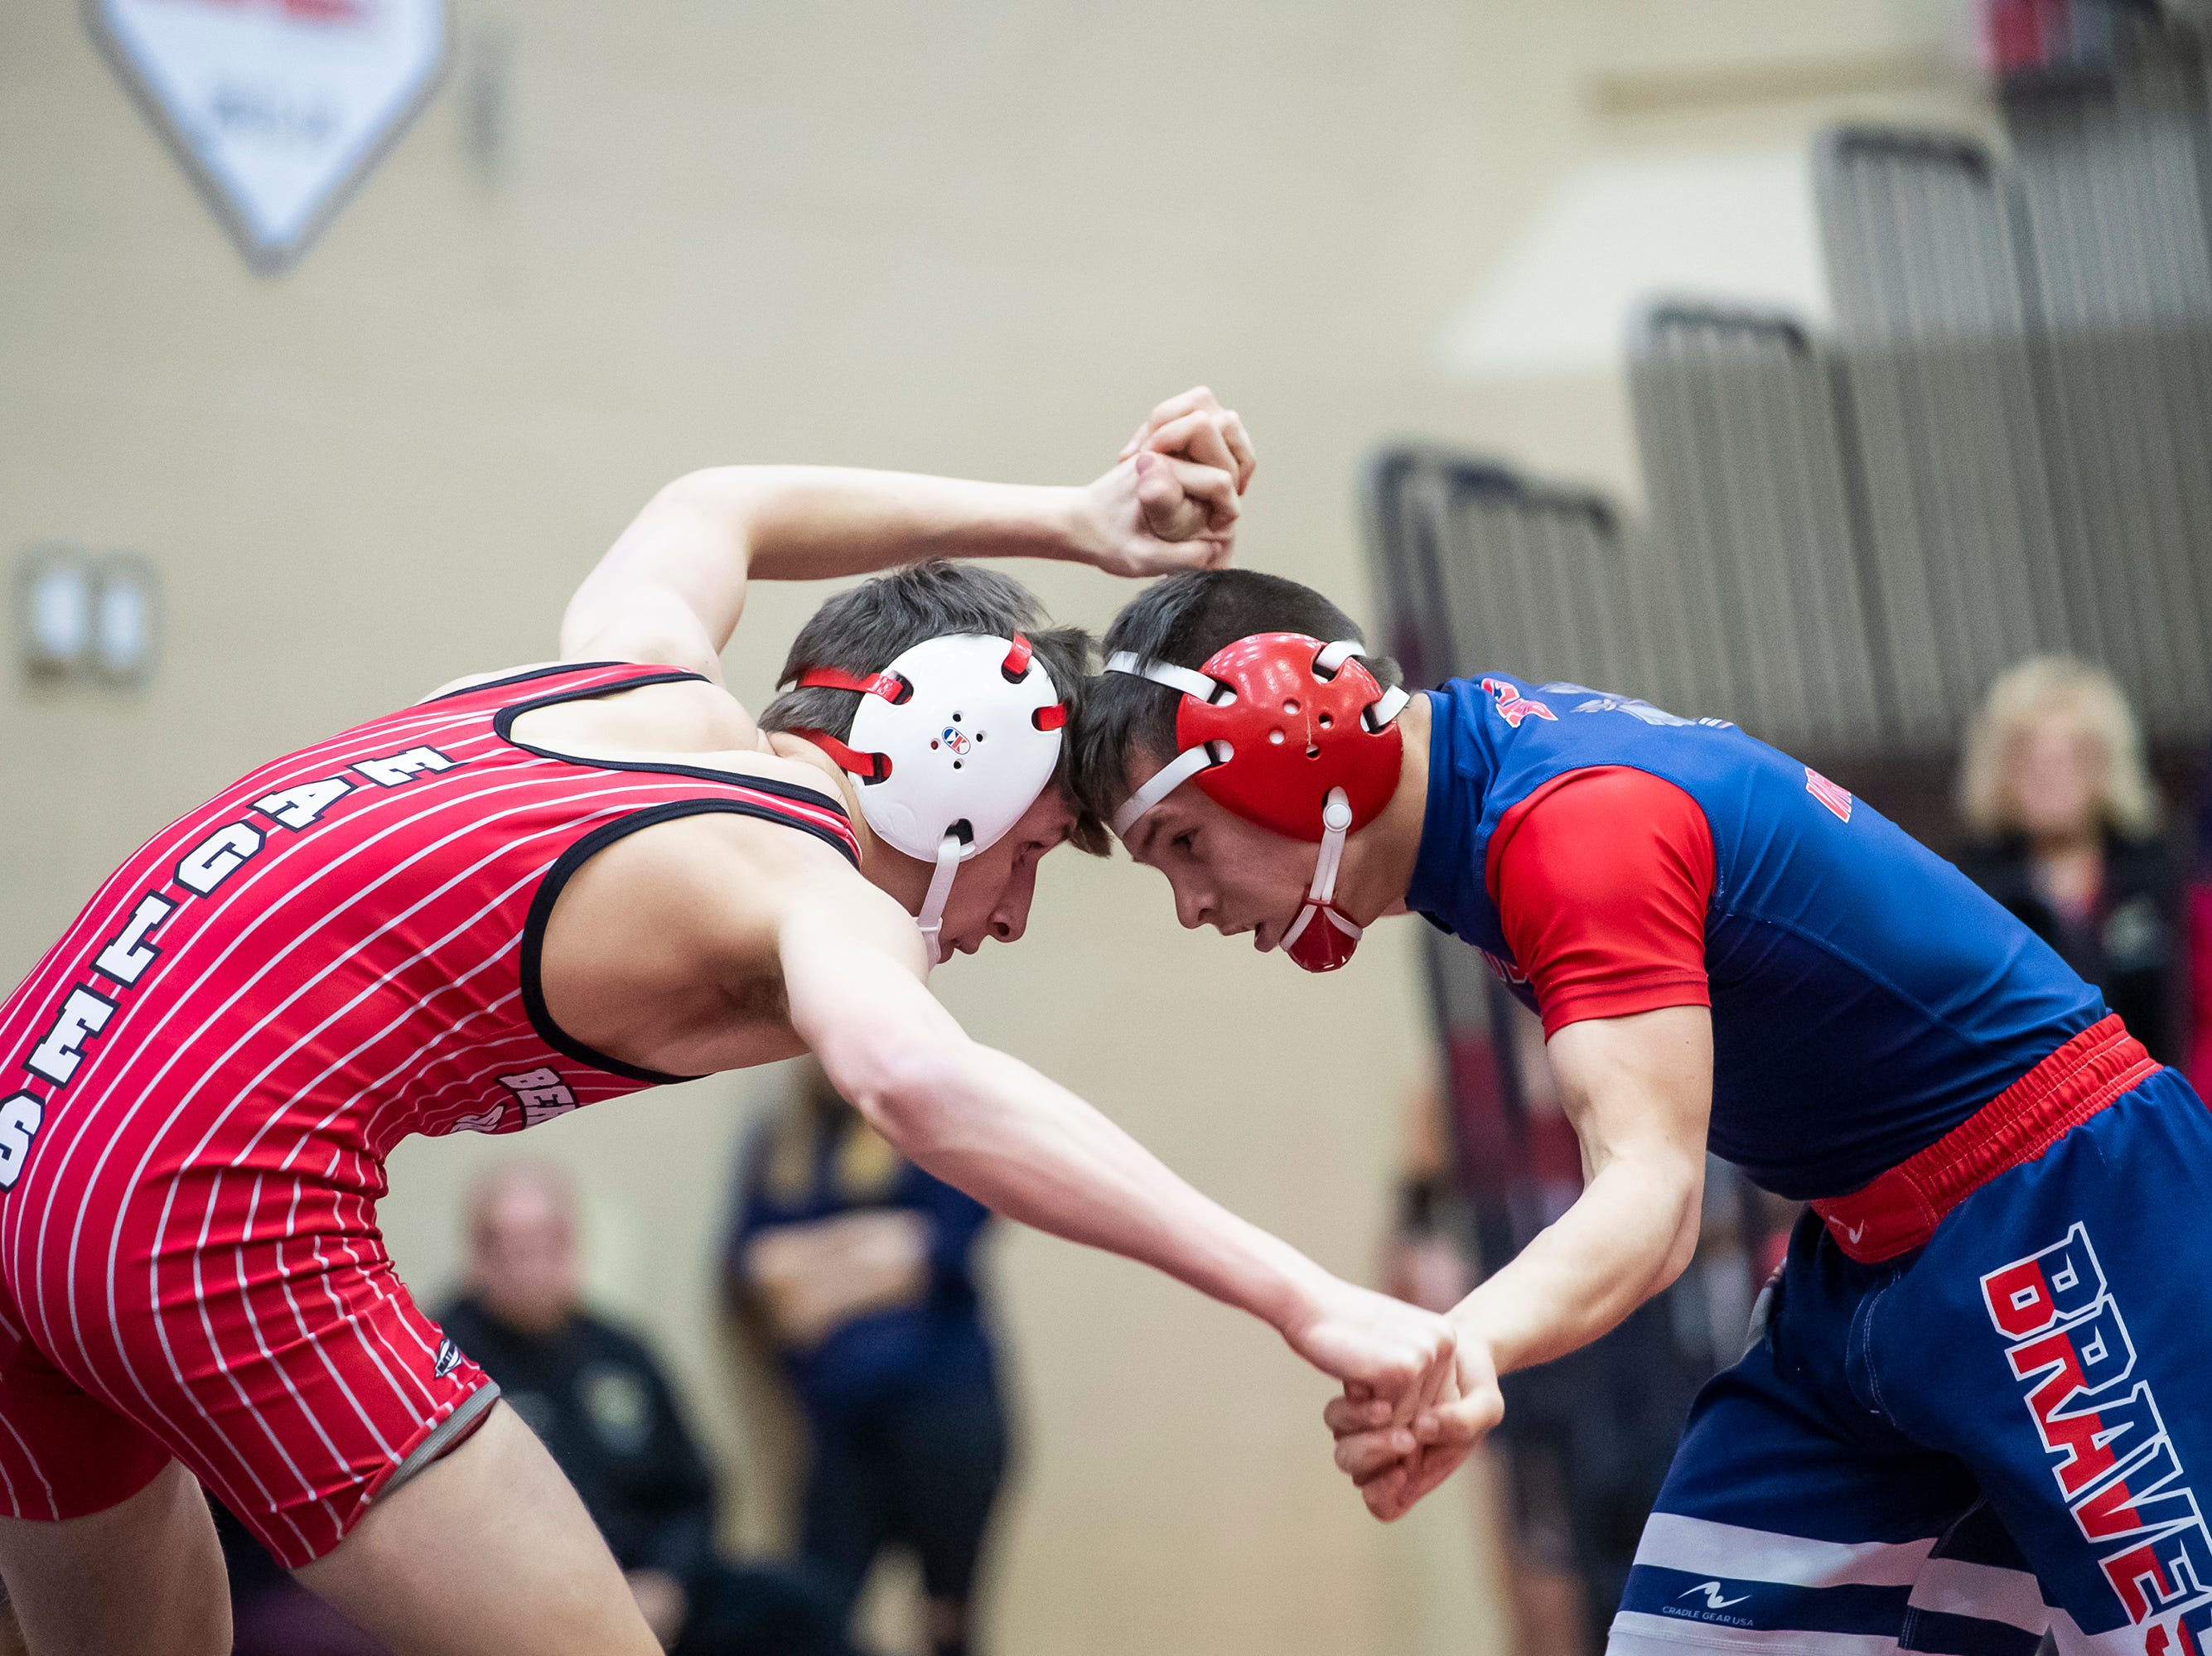 Bermudian Springs' Caleb Mantz, left, wrestles Octorara's Seth Hoopes in the 126-pound bout during a PIAA District III 2A quarterfinal match at Cumberland Valley High School January 31, 2019. The Eagles beat Octorara 42-23.